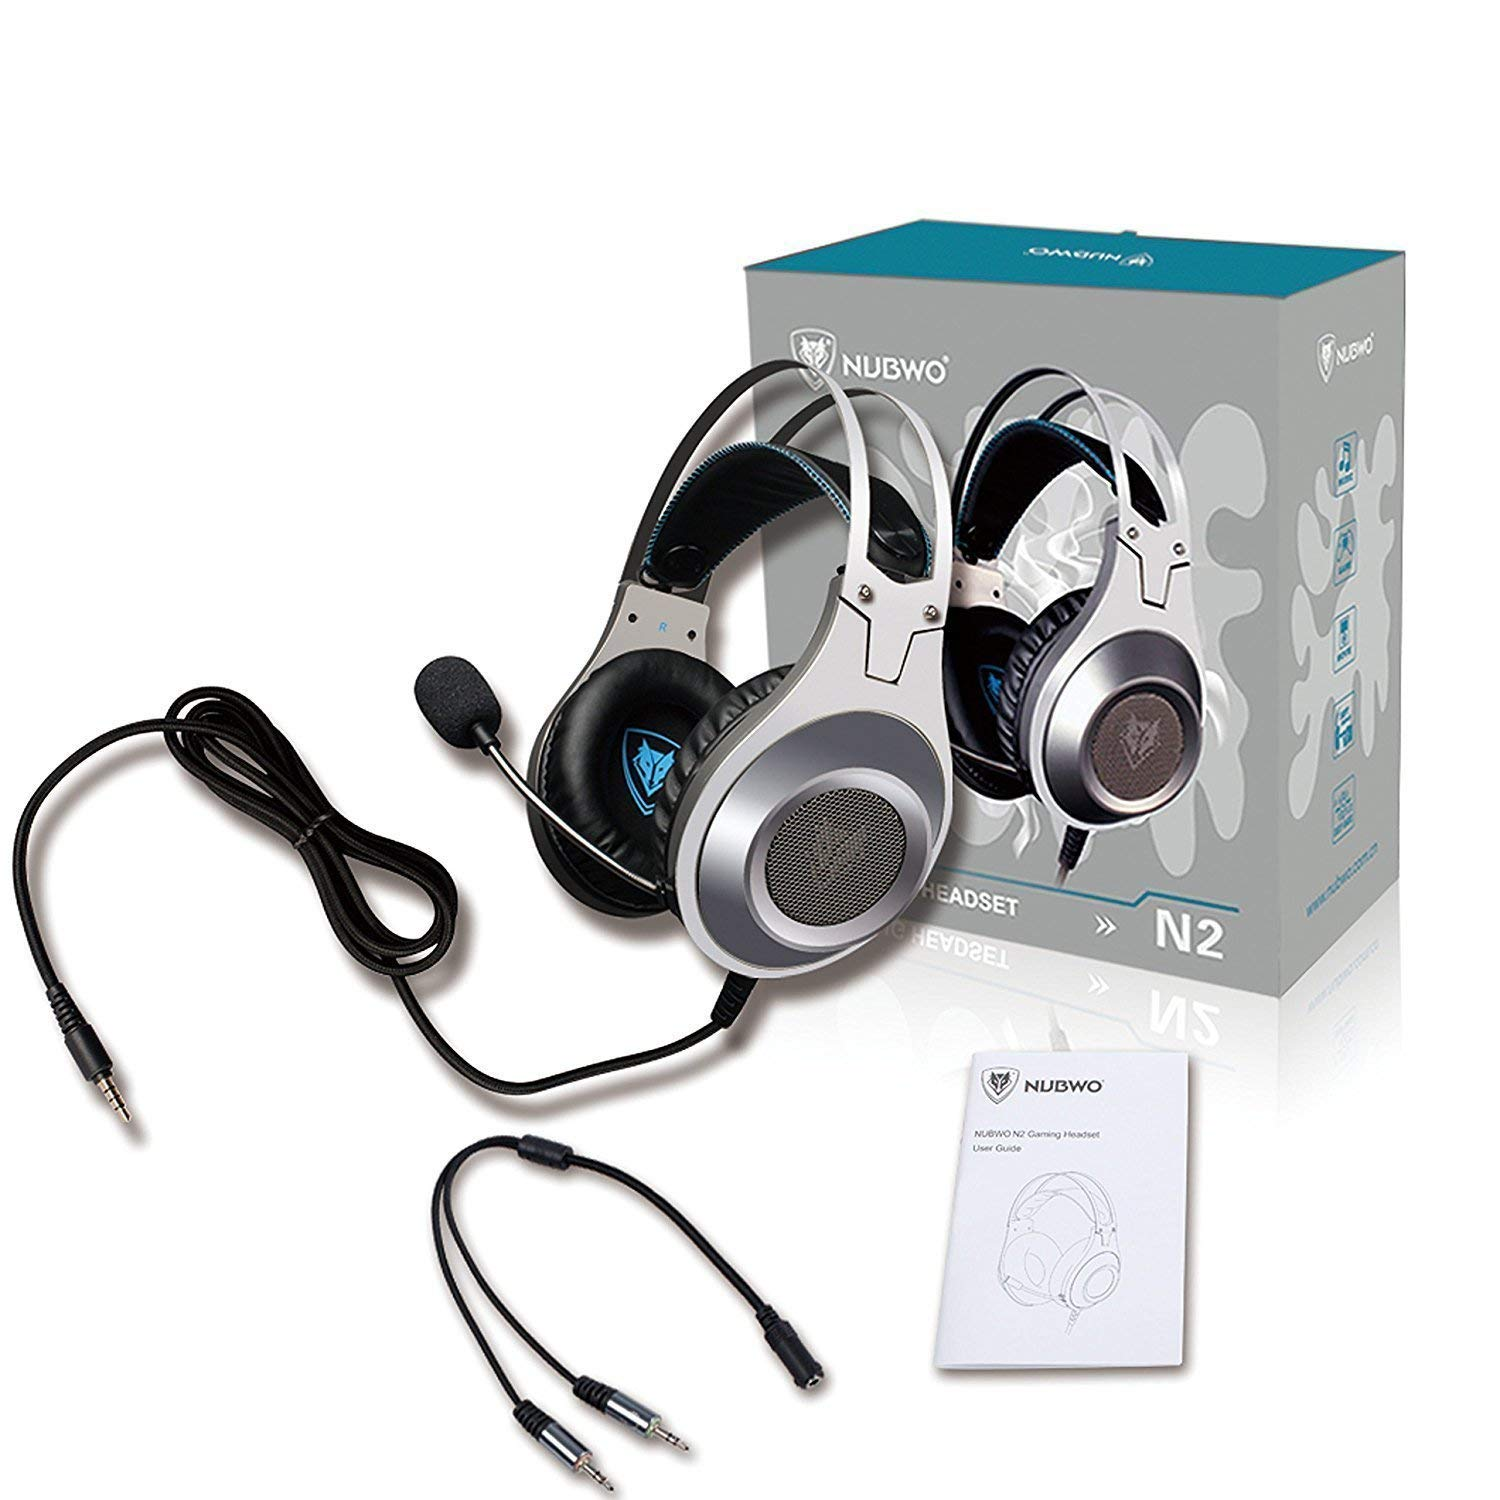 Gaming Headset, NUBWO Wired Gaming Headphones with Microphone and Volume Control for PC/Ps4/Xbox one 1 /Phone/Laptop (Silver) by NUBWO (Image #7)